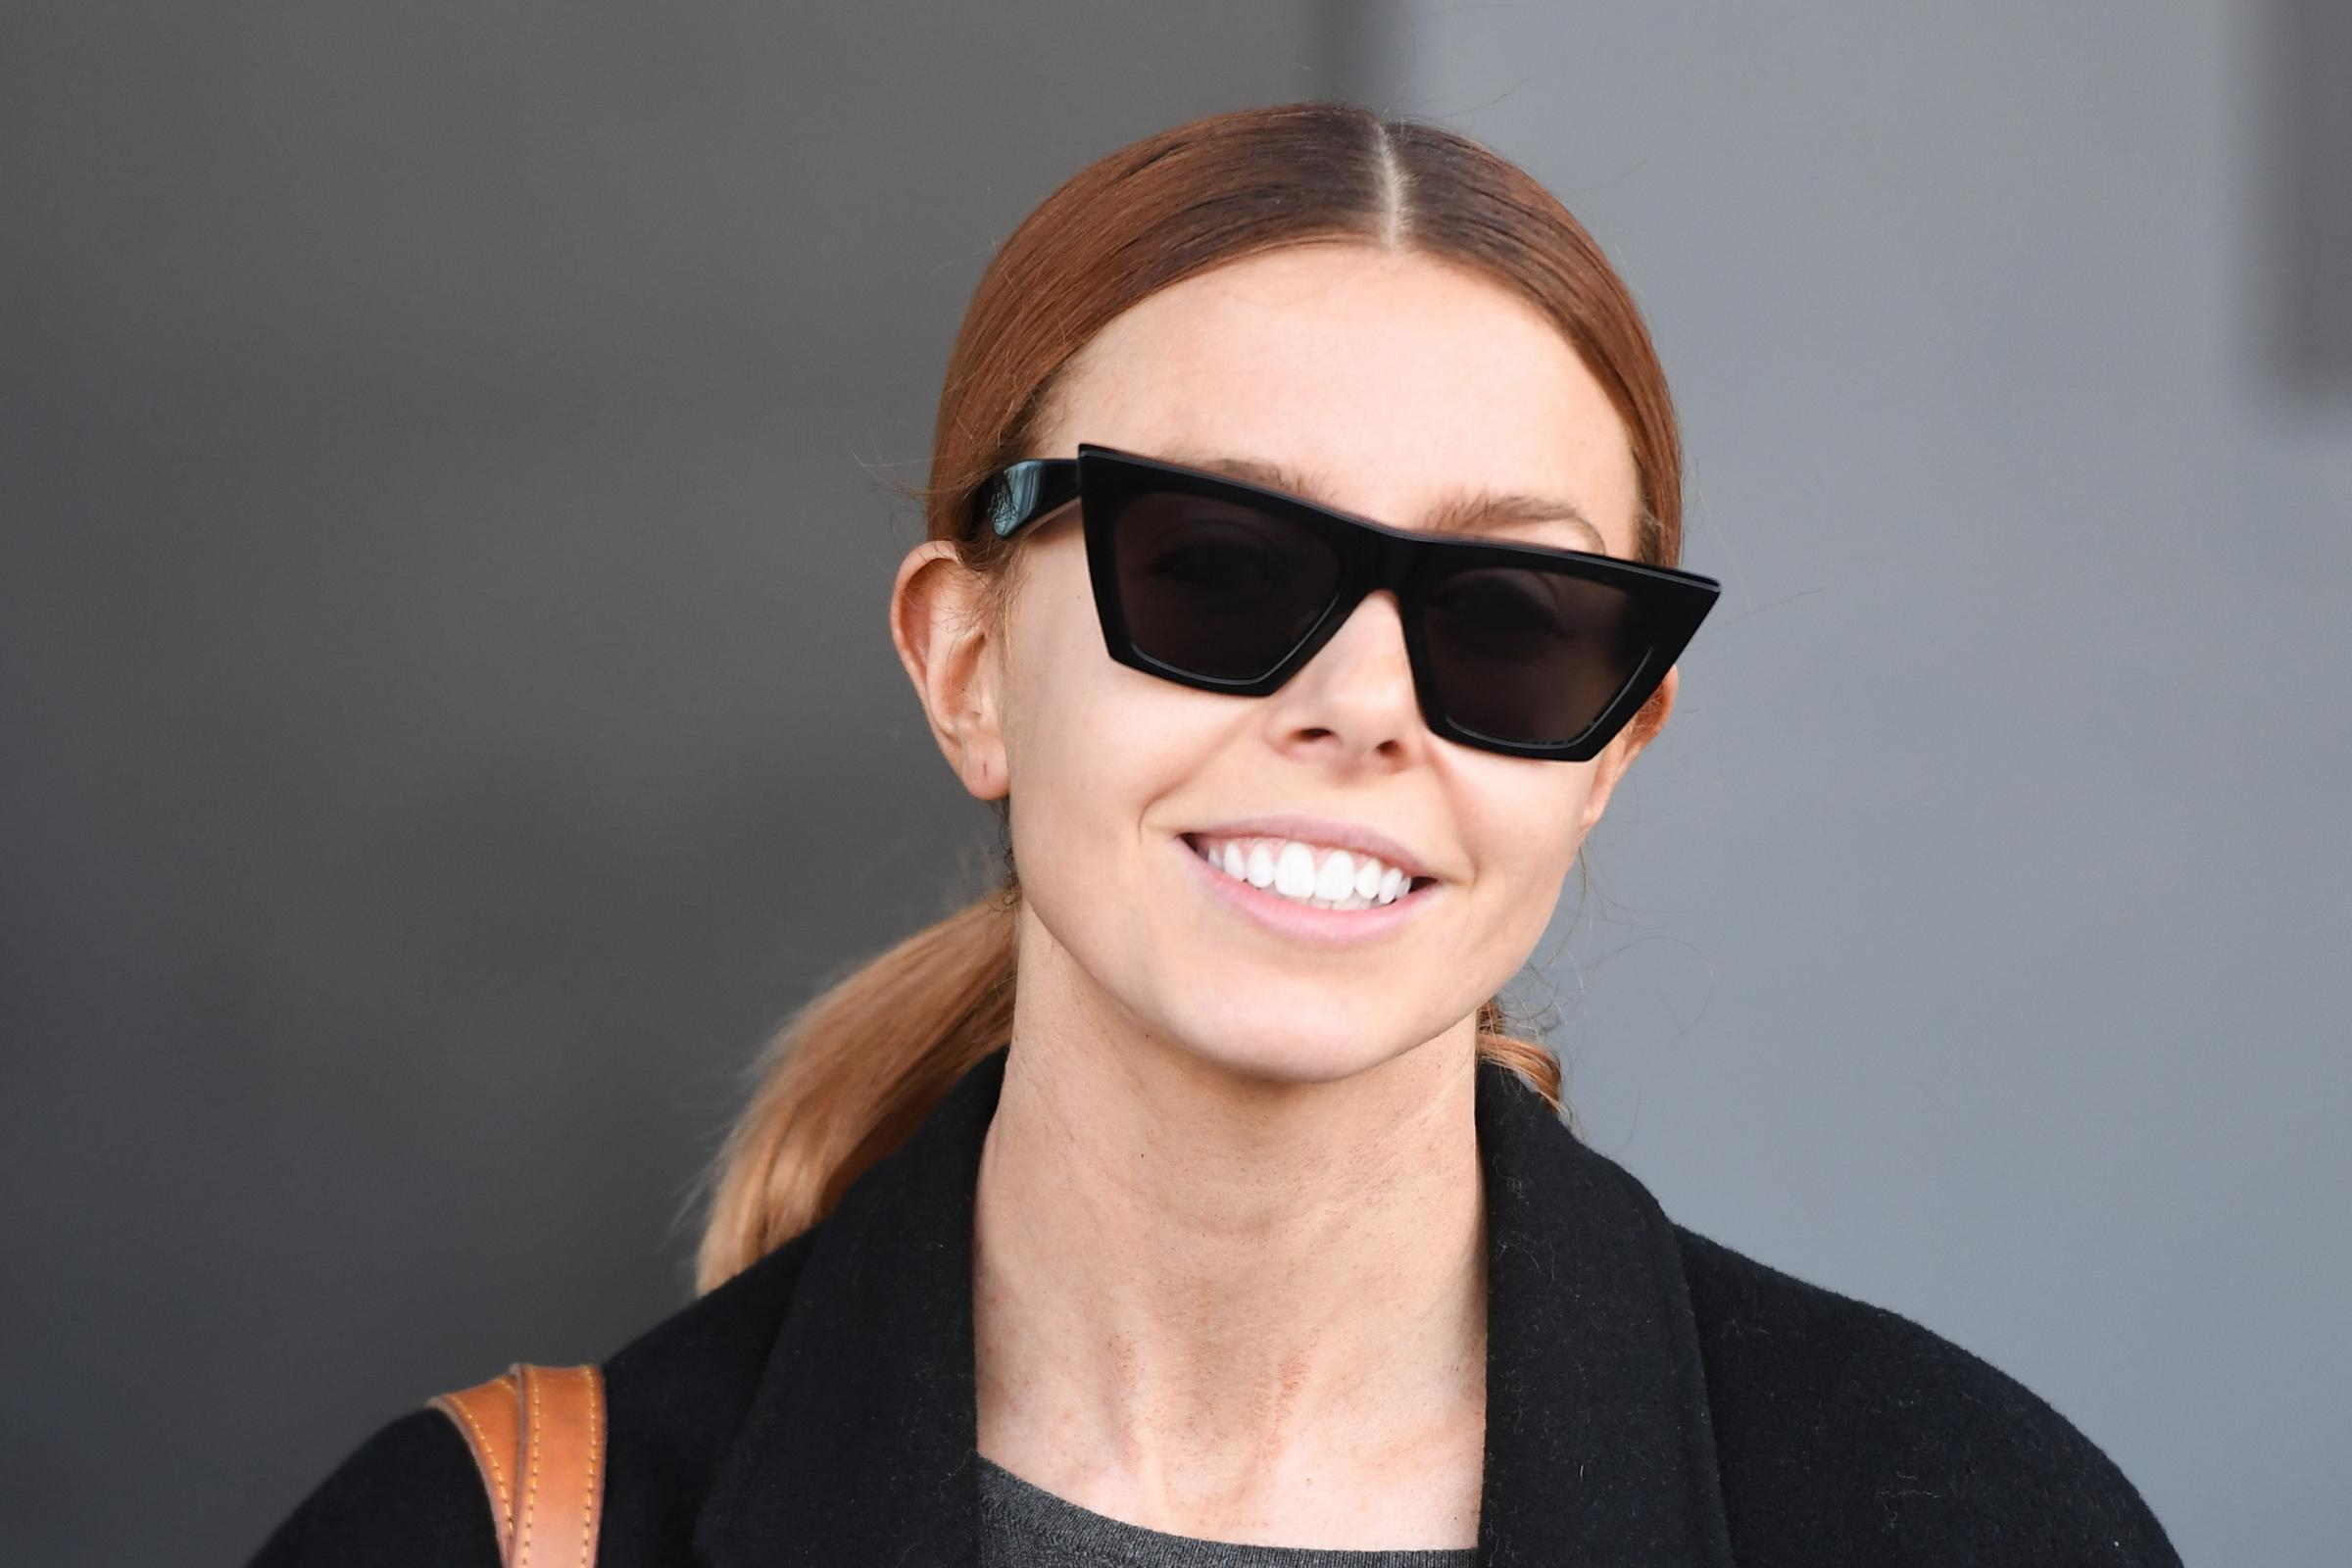 Stacey Dooley, who has responded to critics of her new show